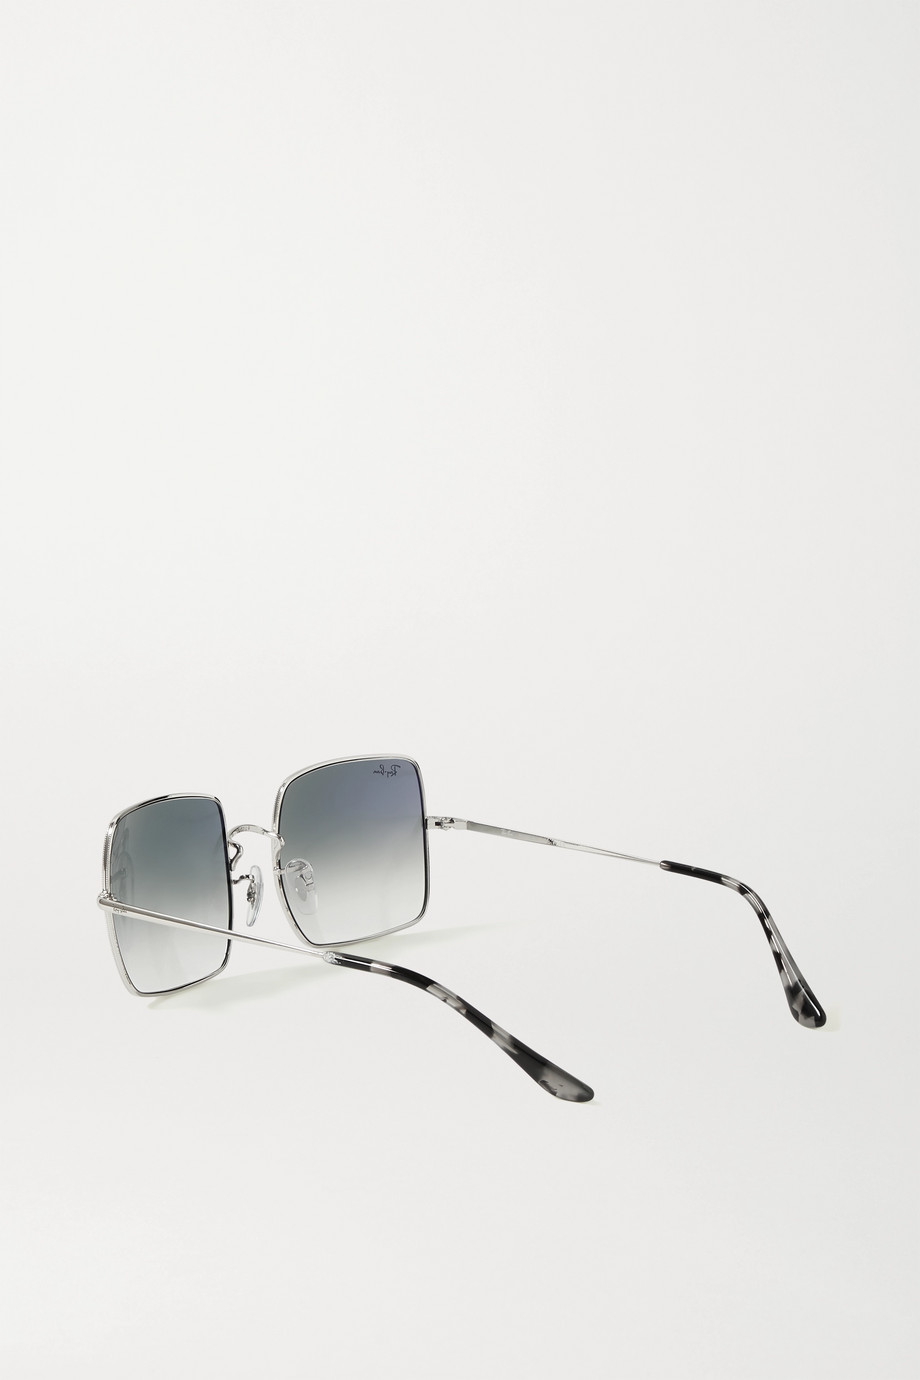 Ray-Ban 1971 square-frame silver-tone and acetate sunglasses